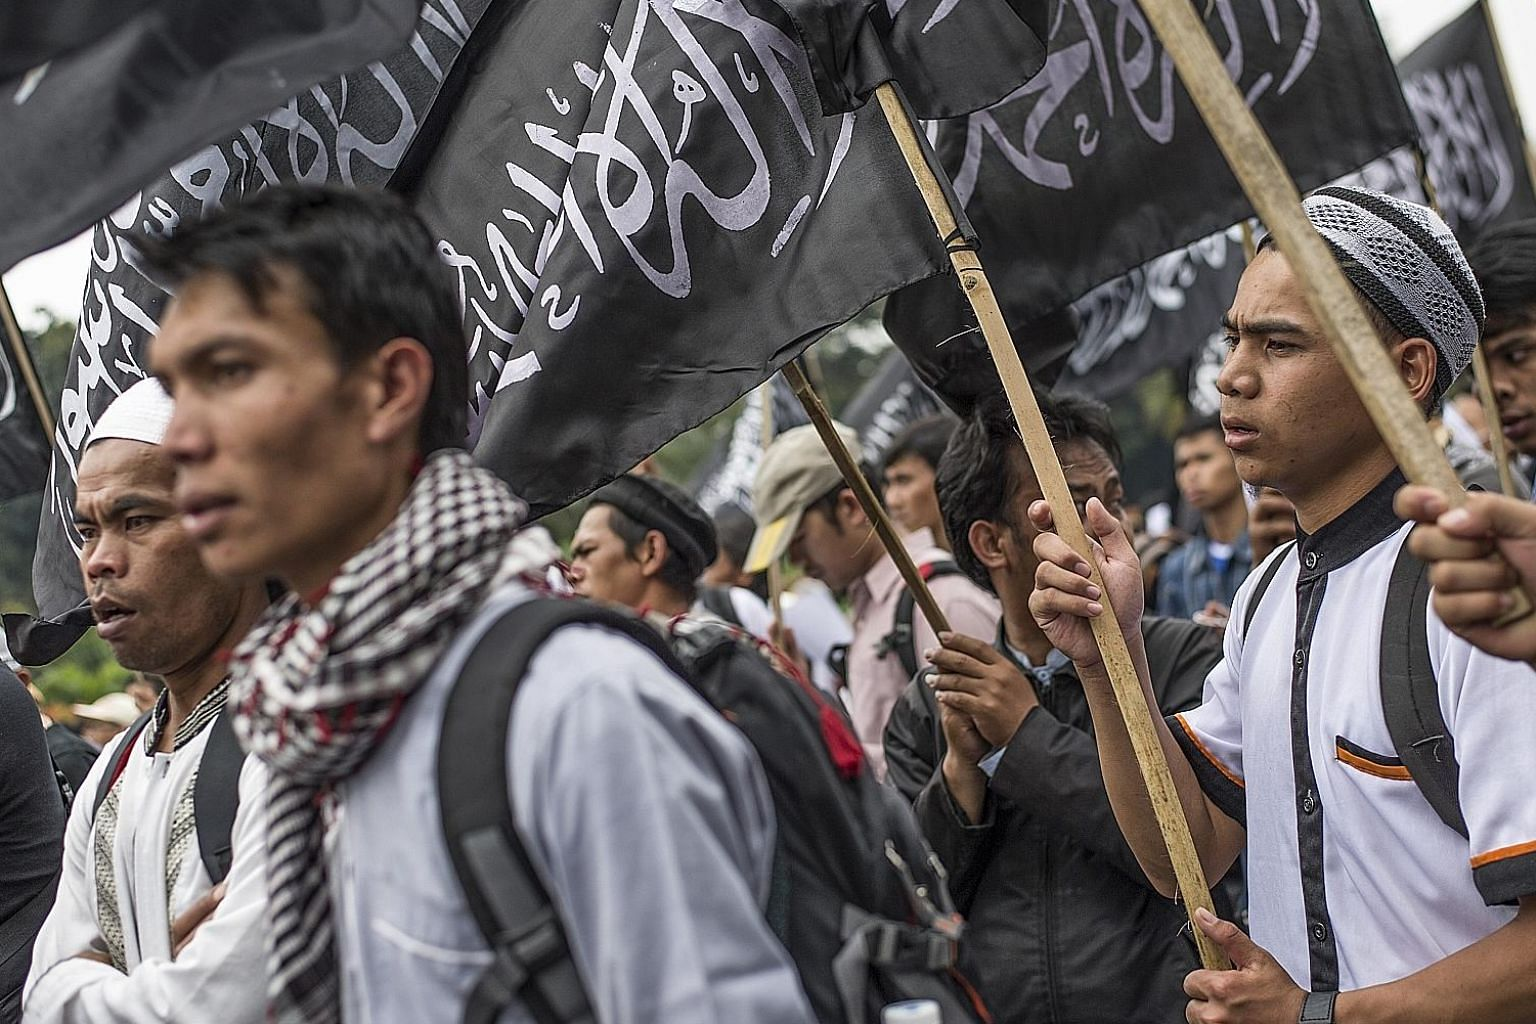 Indonesian Muslims waving the Hizbut Tahrir flag during an anti-government rally in Jakarta in July 2017, to condemn a decree banning groups that oppose Indonesia's official state ideology. The decree was seen as targeting radical Islamists in the co